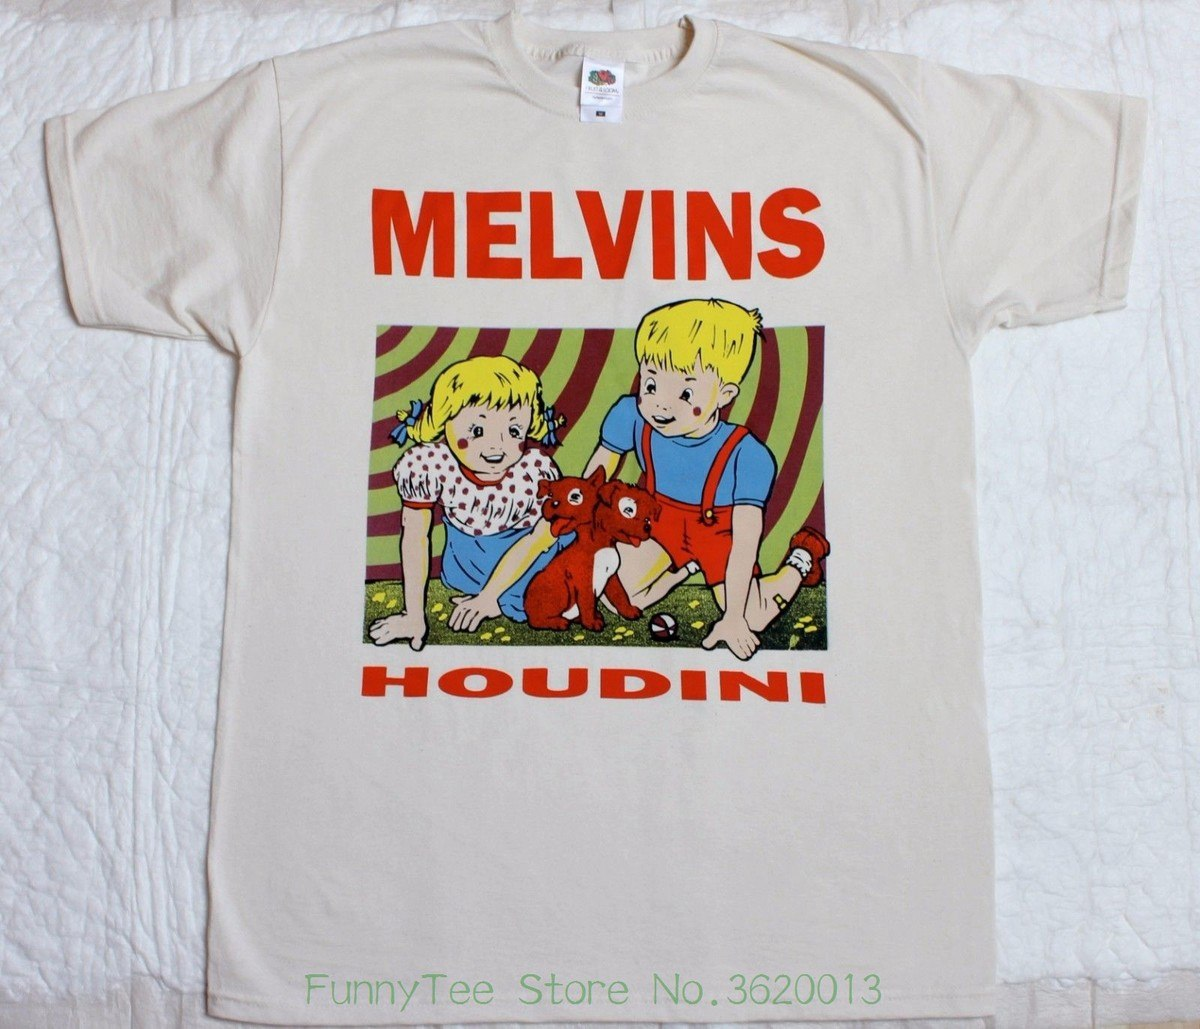 Melvins Houdini Sludge Metal Stoner Rock Fantomas Natural Color T-shirt